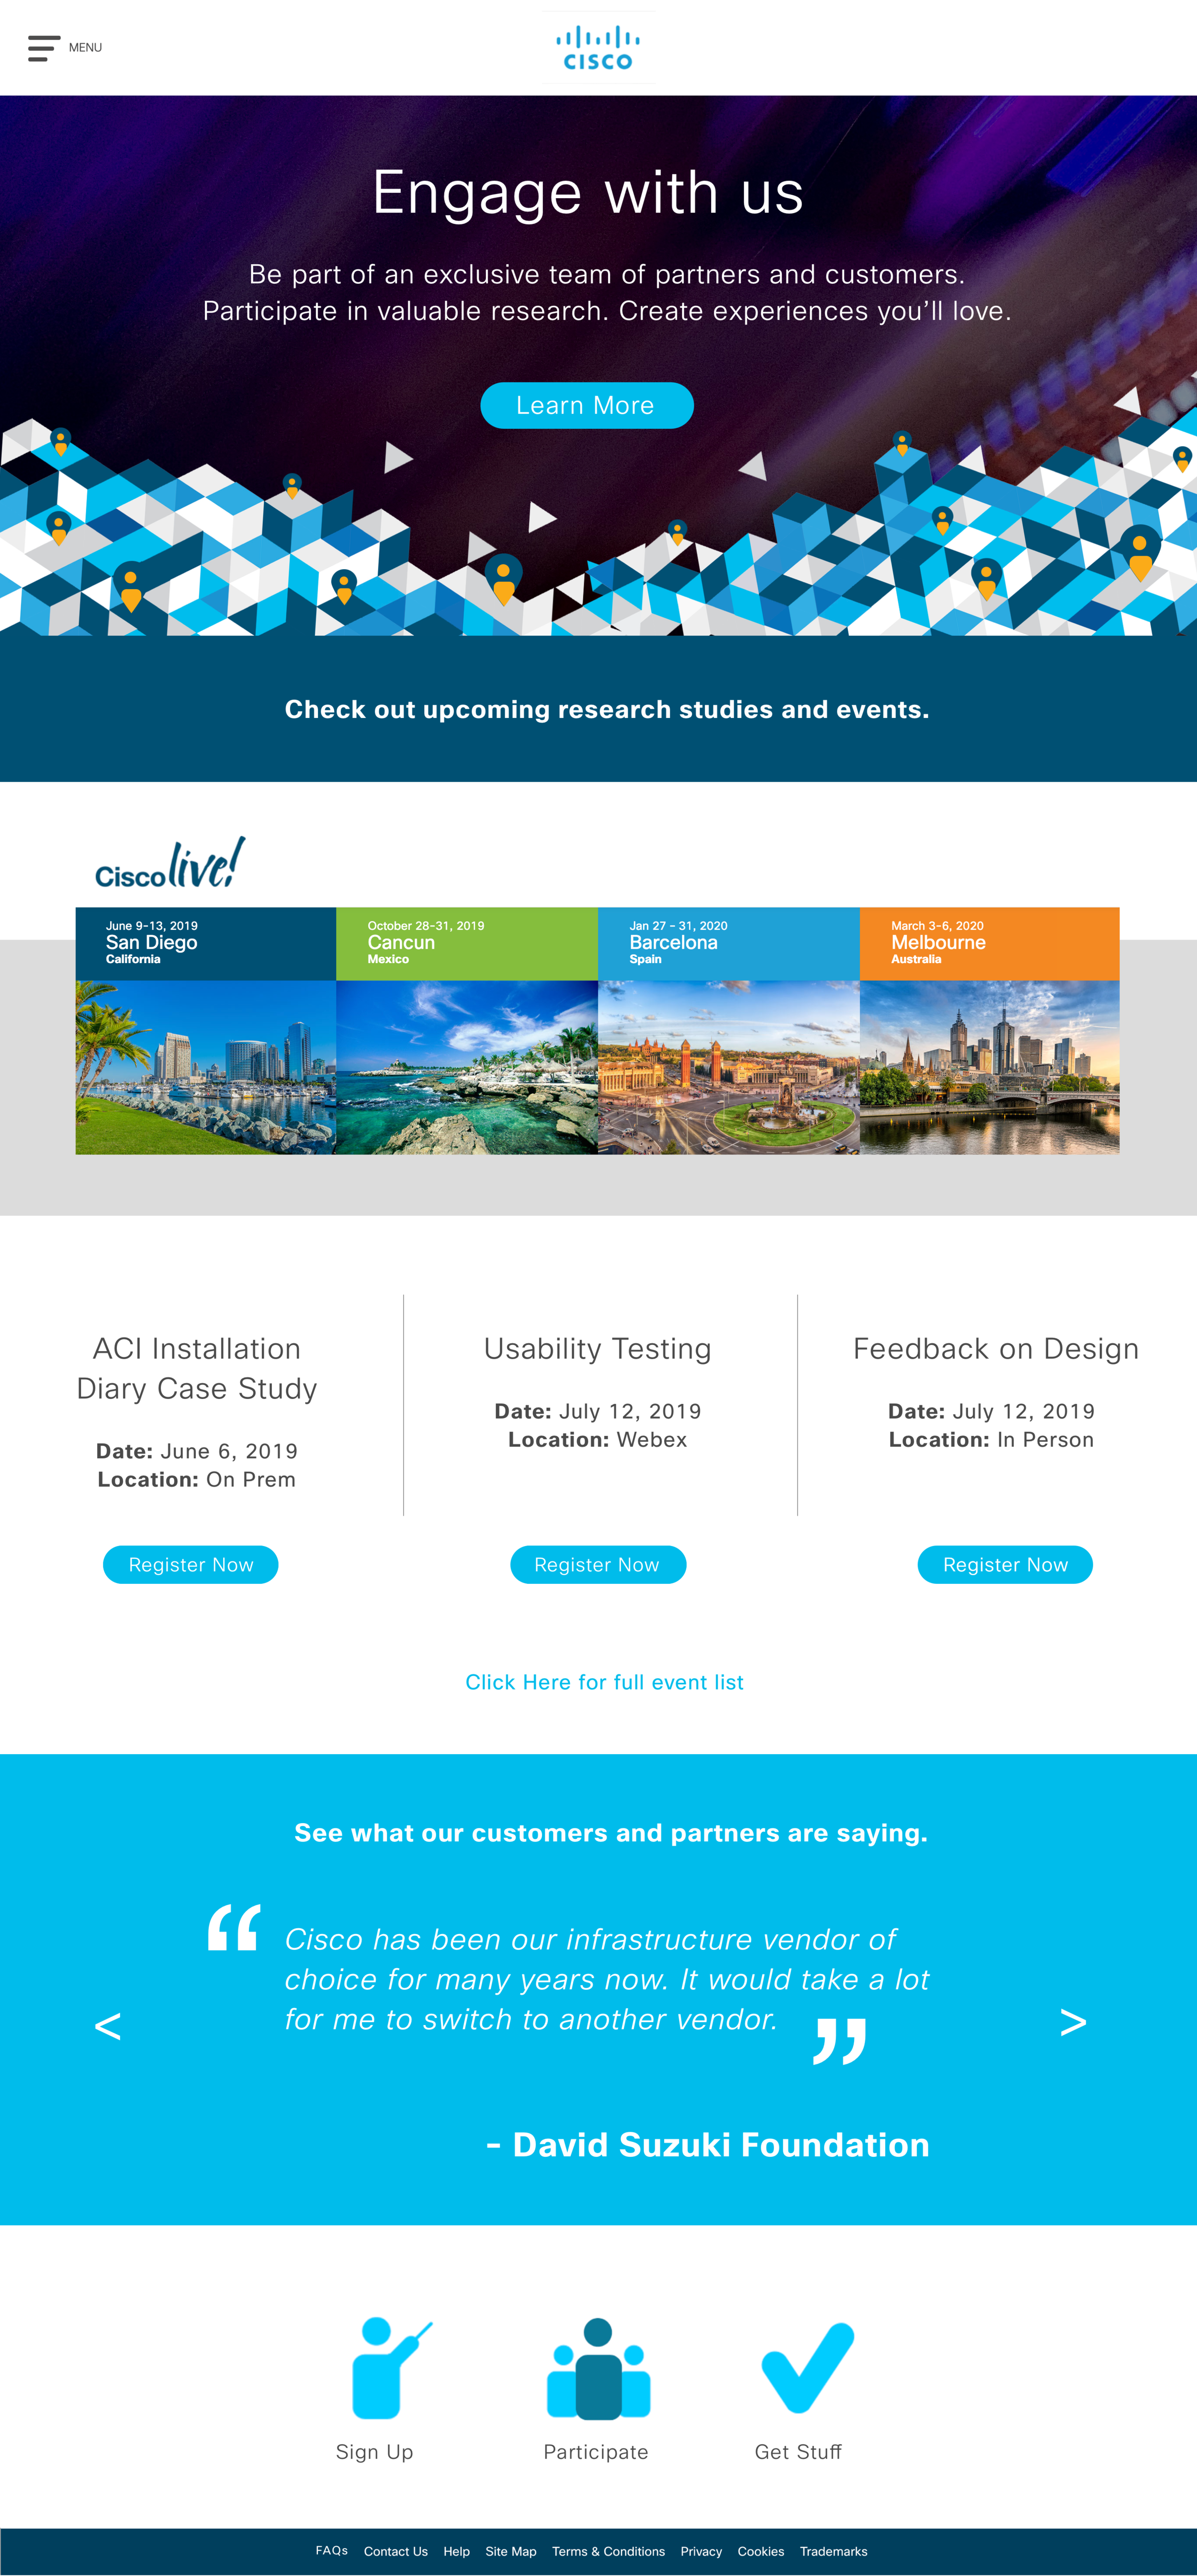 Customer and Partner Engagement Page:   This is where one would go to sign up for Cisco Insider events at venues like  Cisco Live.